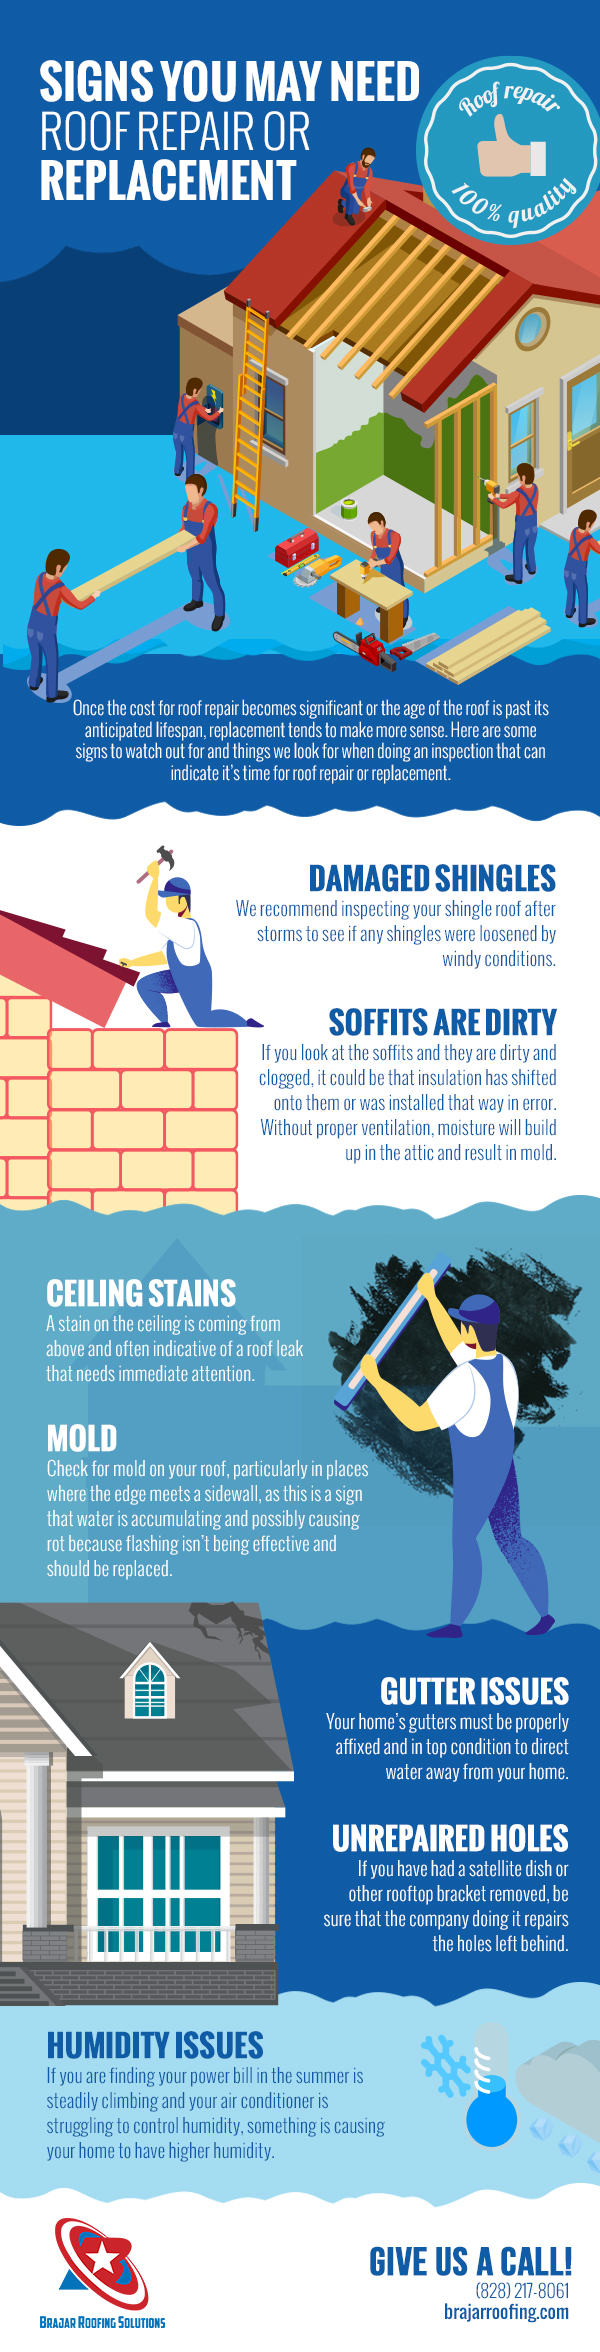 Signs you may need roof repair or replacement